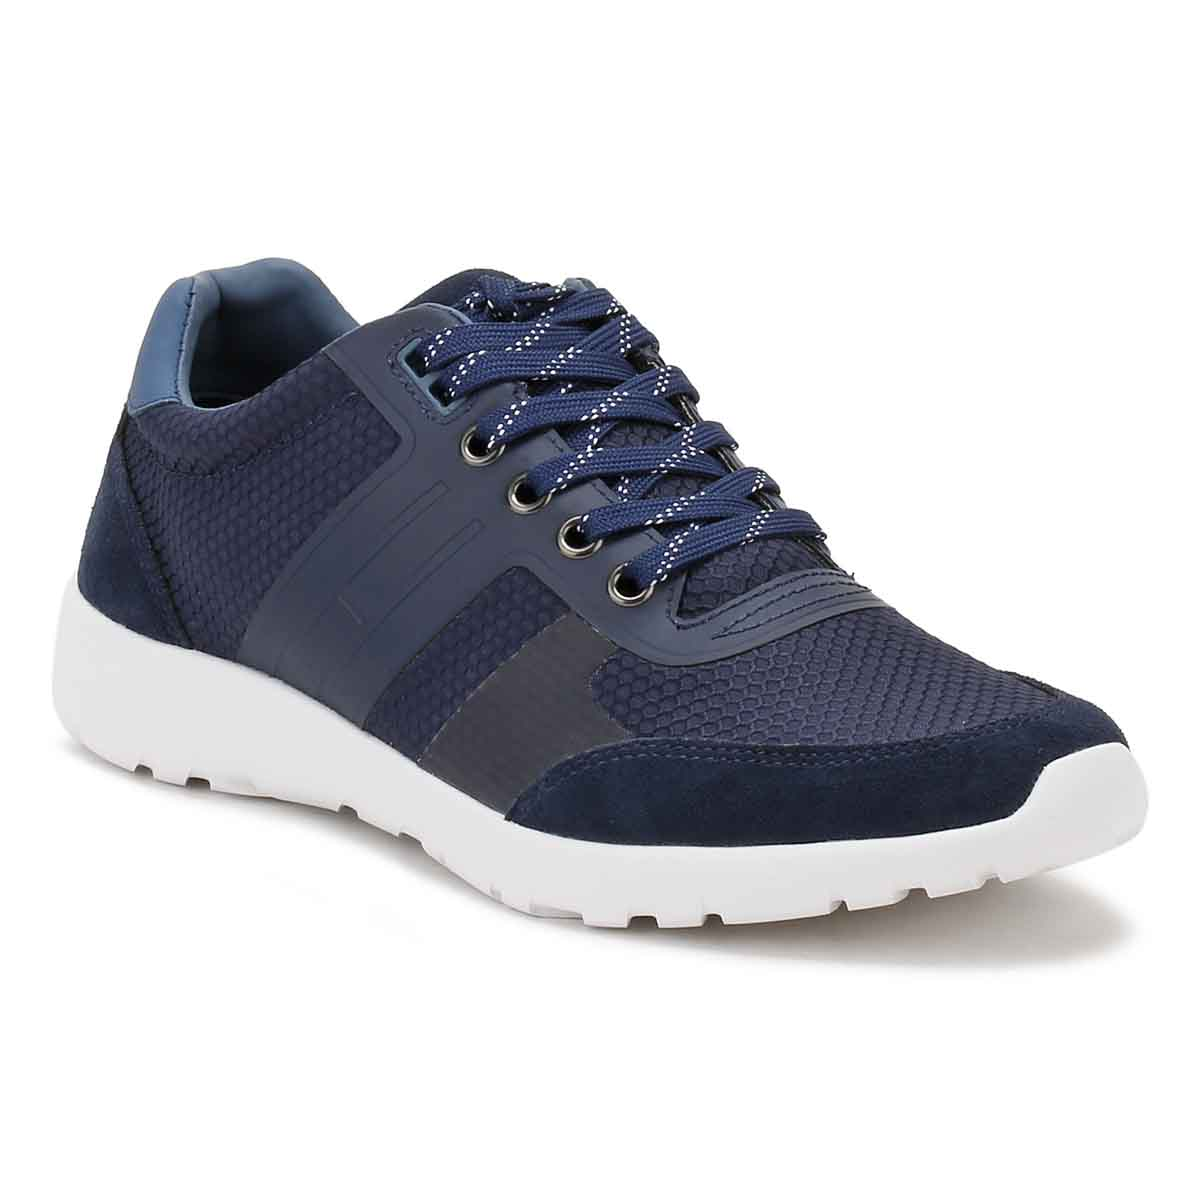 082bcca55 Tommy Hilfiger Mens Tommy Navy Blue Trainers Sport Casual Shoes ...